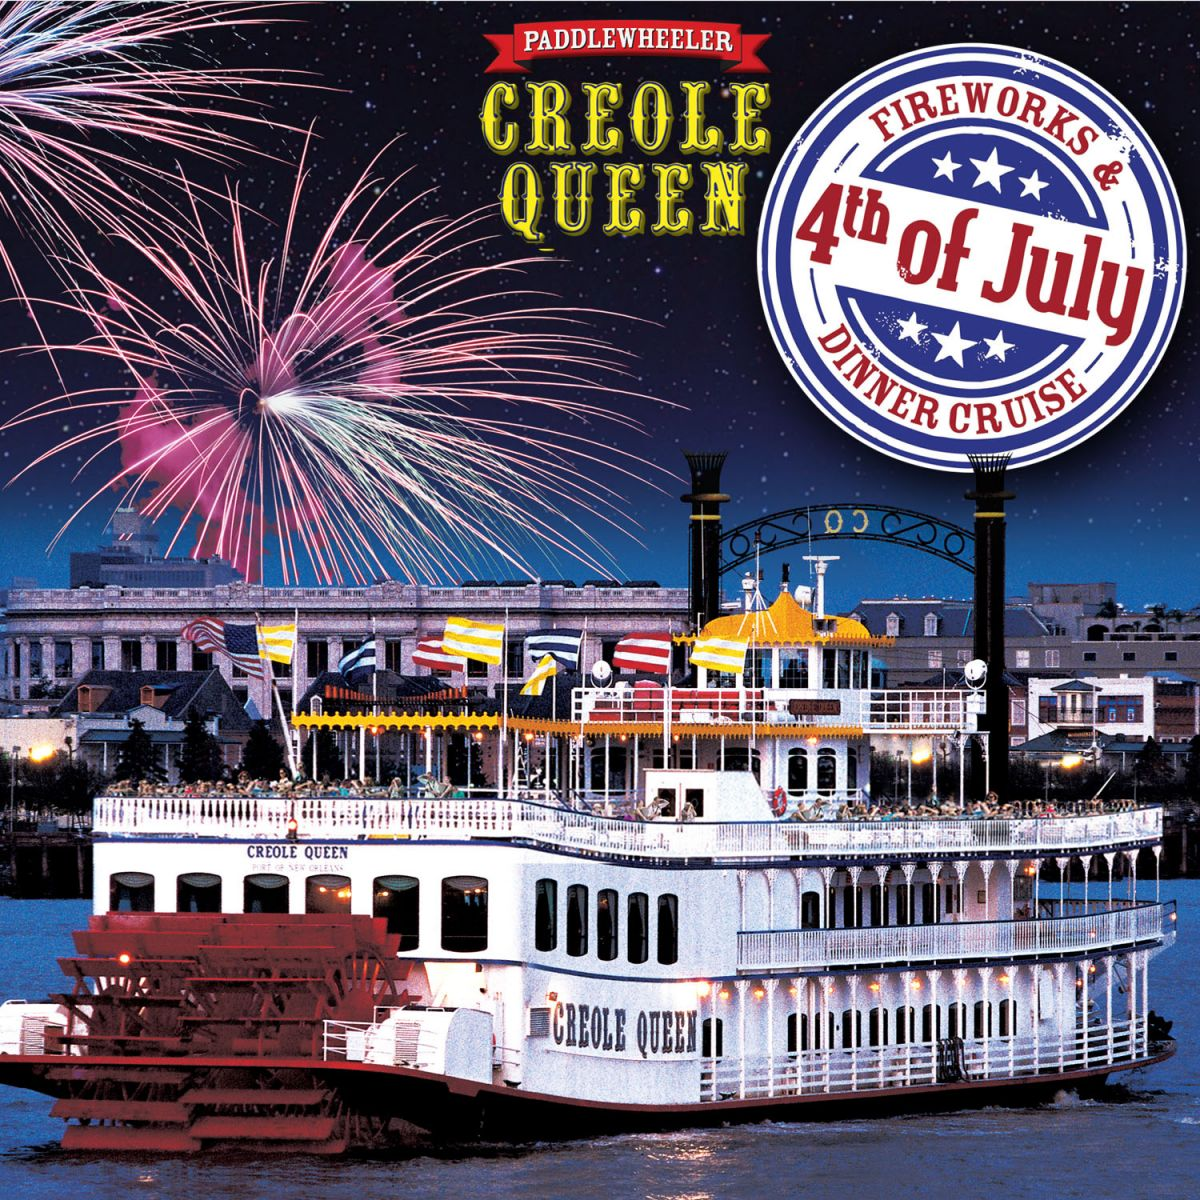 new orleans 4th of july cruise